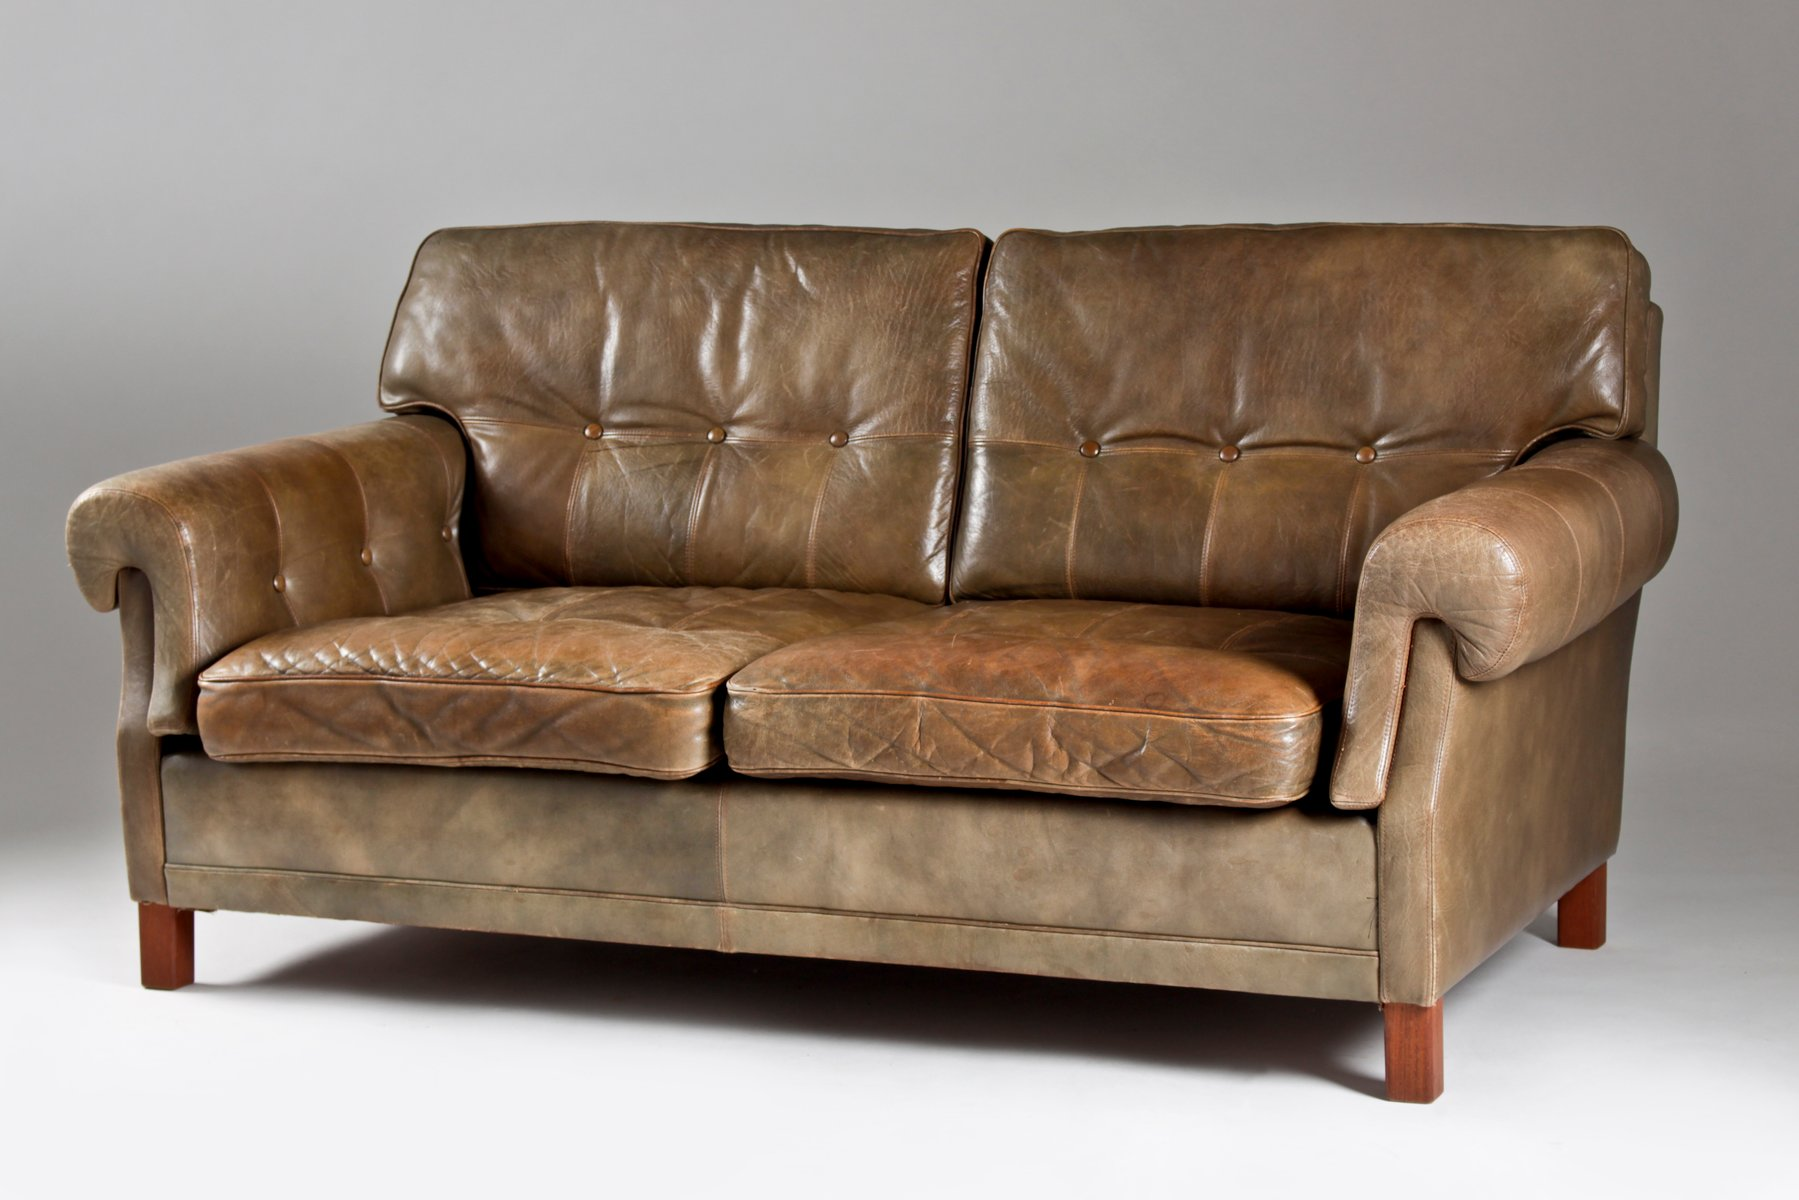 Swedish Teak & Leather Sofa from Ope Möbler 1960s for sale at Pamono